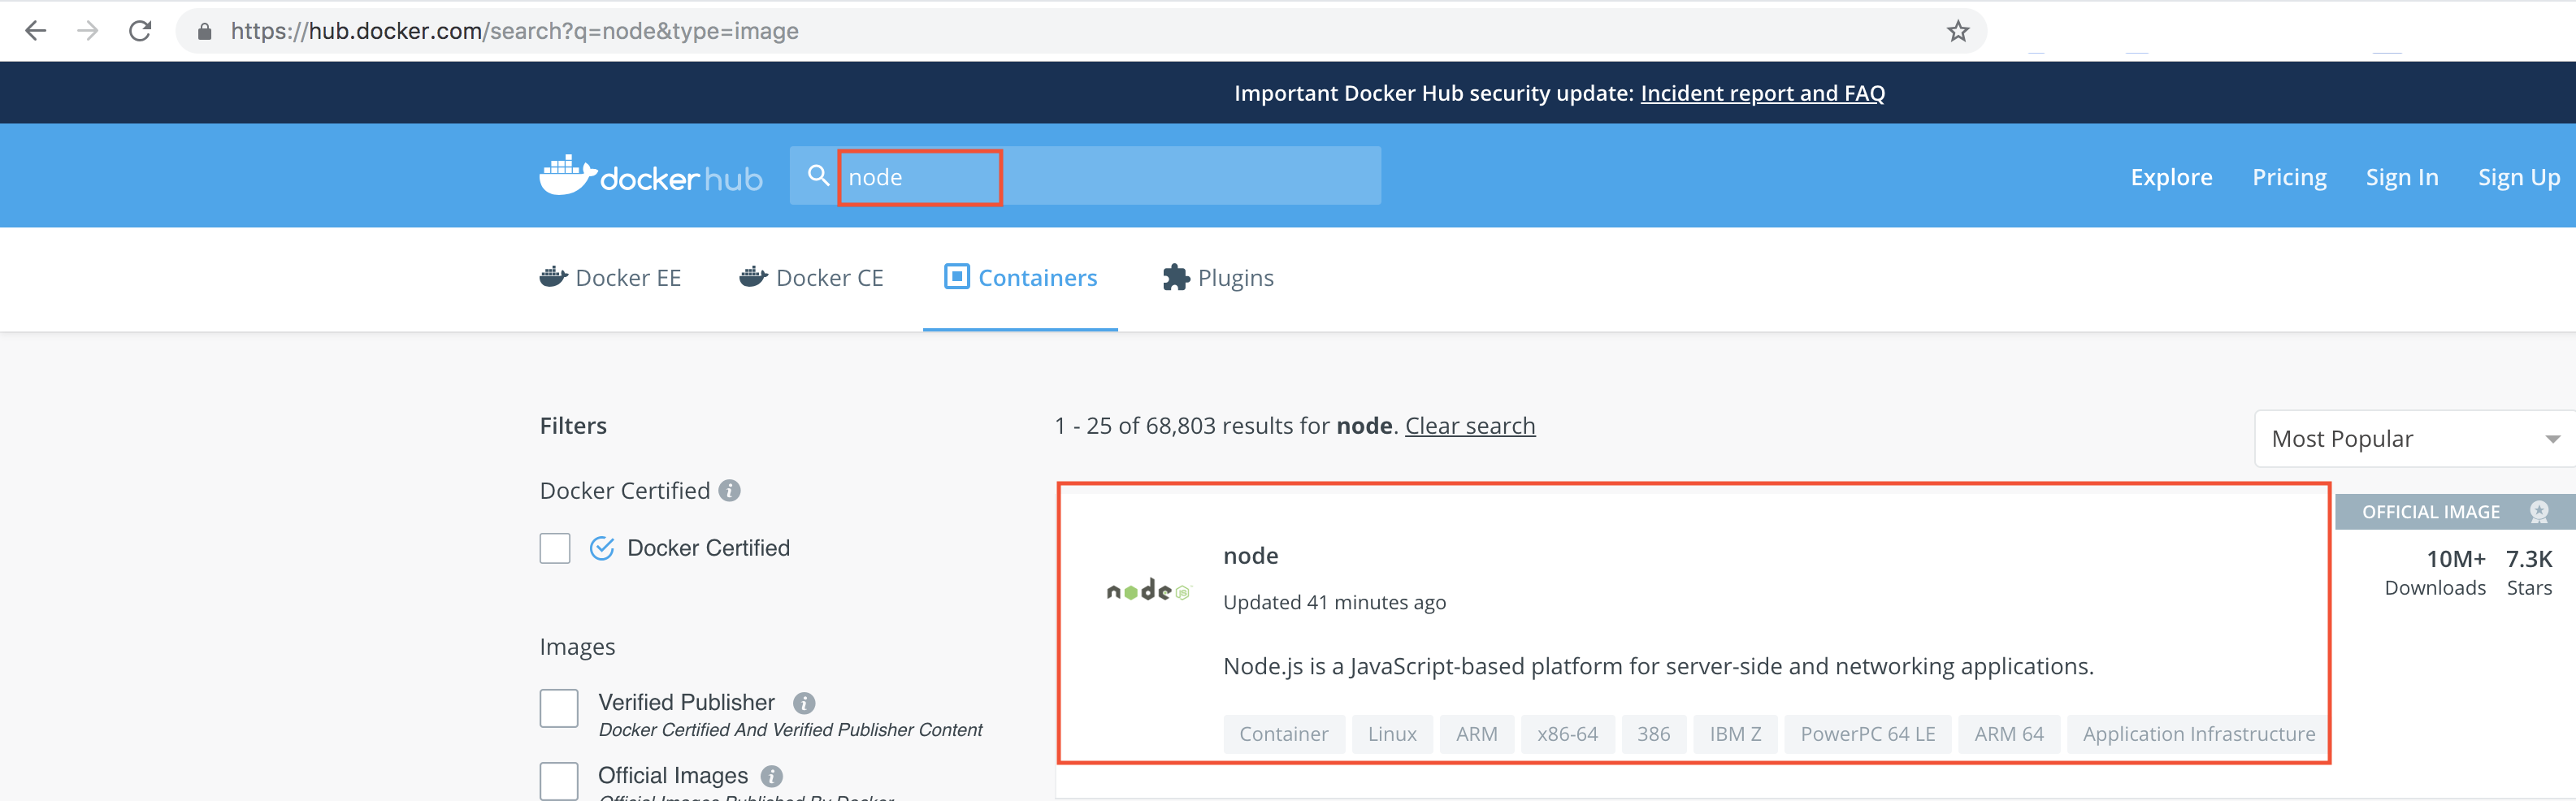 A crash course to the most important Docker concepts and